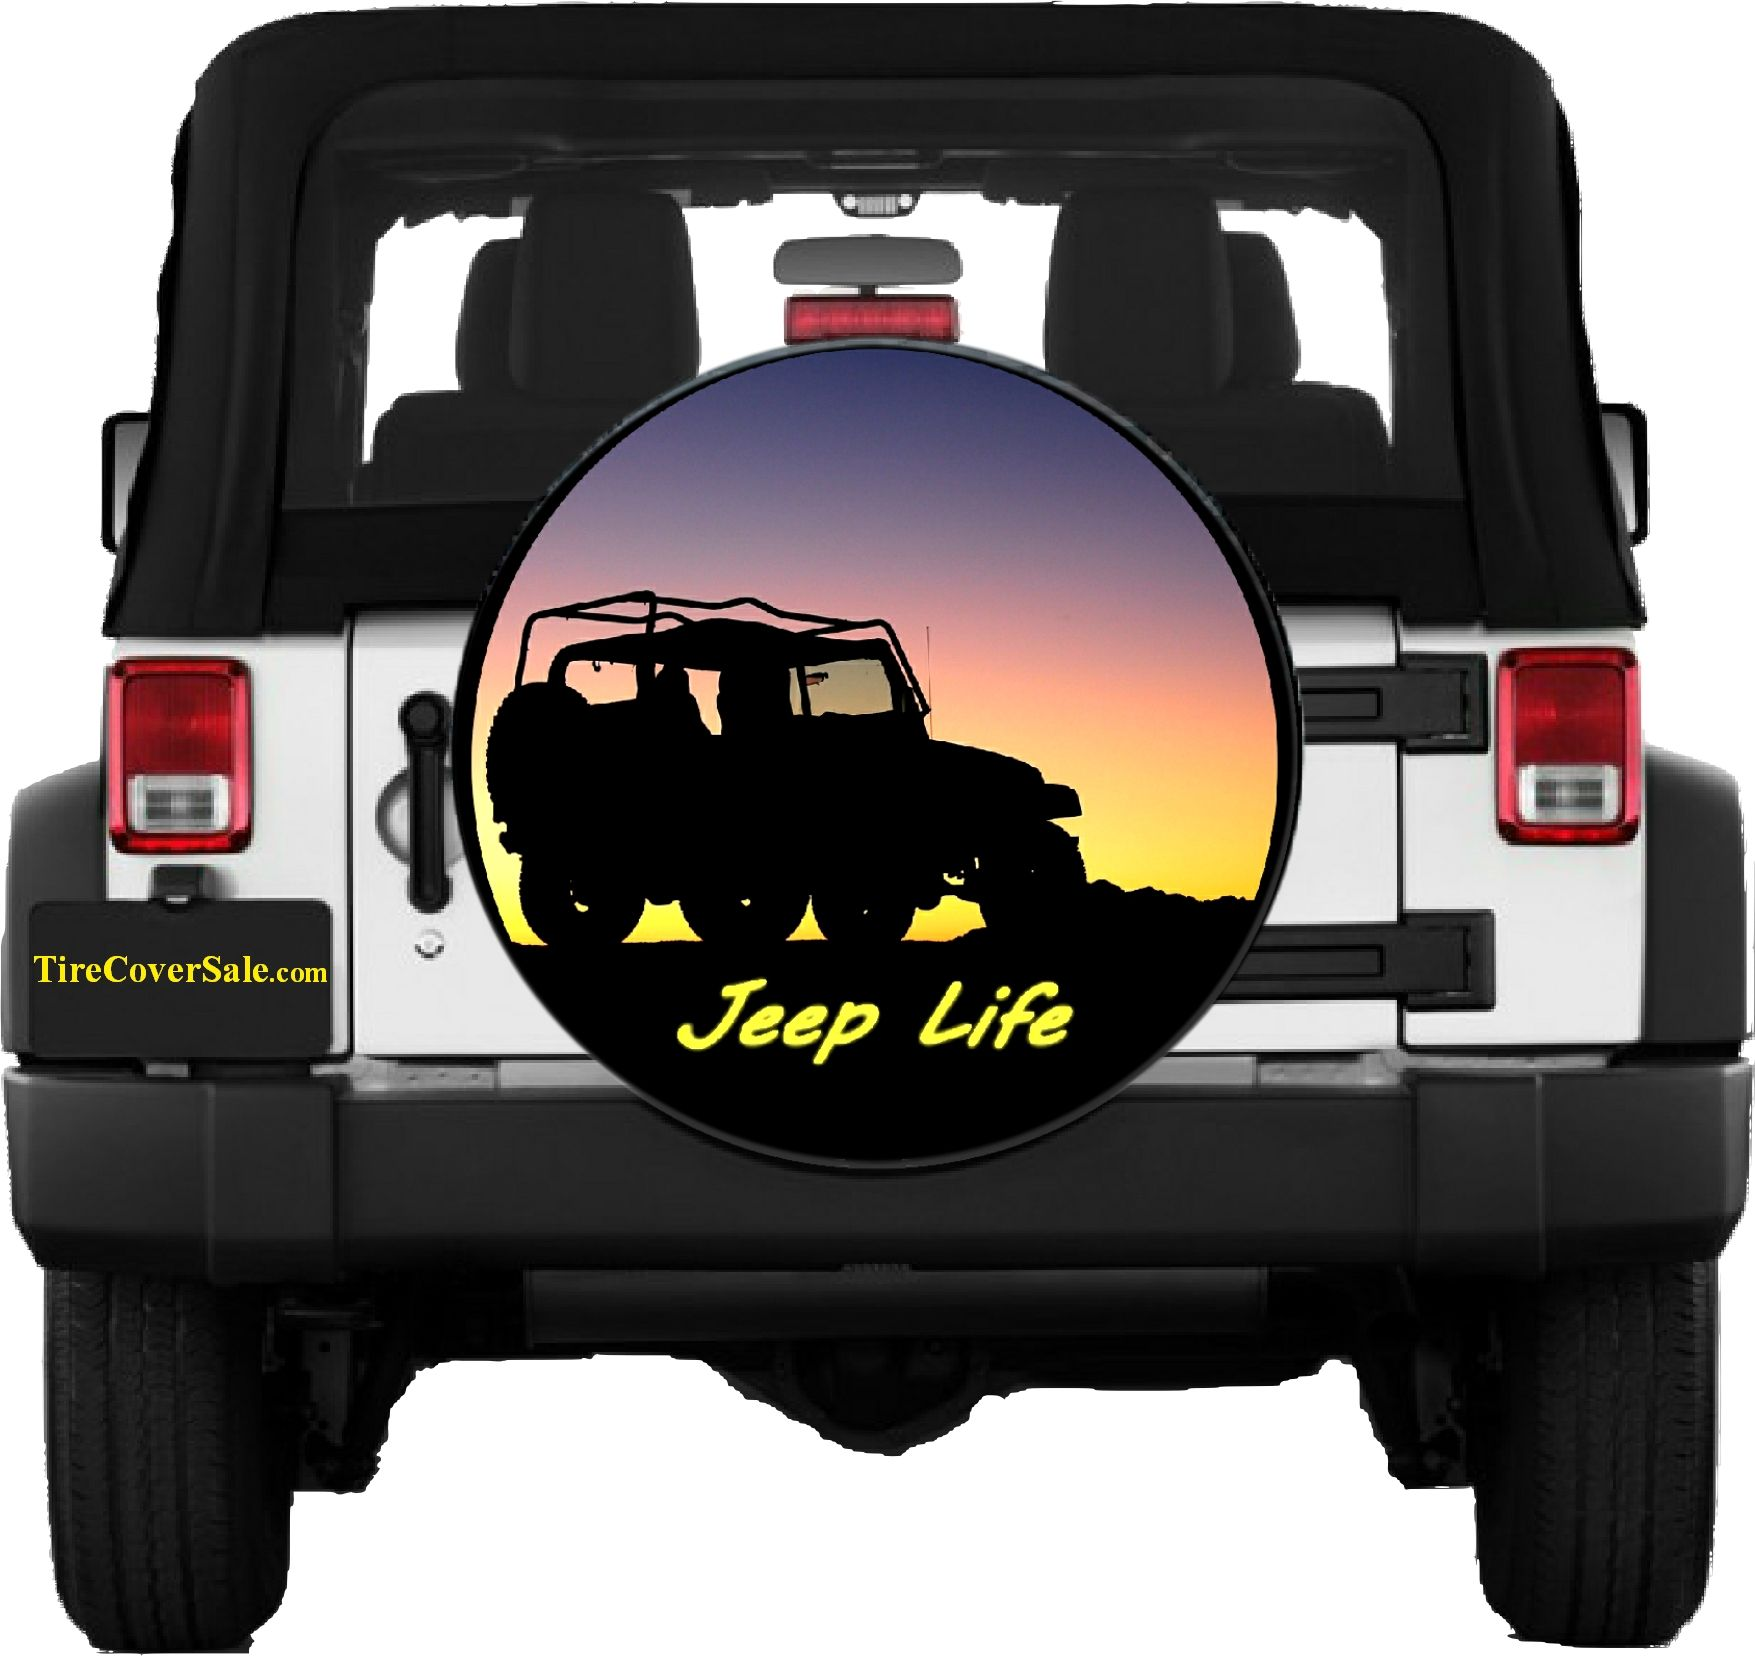 Photo Quality Printing On Marine Grade Vinyl Exact Fit Design Optional Anti Theft Cable Free 2 Year Warranty Made In Tire Cover Jeep Life Spare Tire Covers